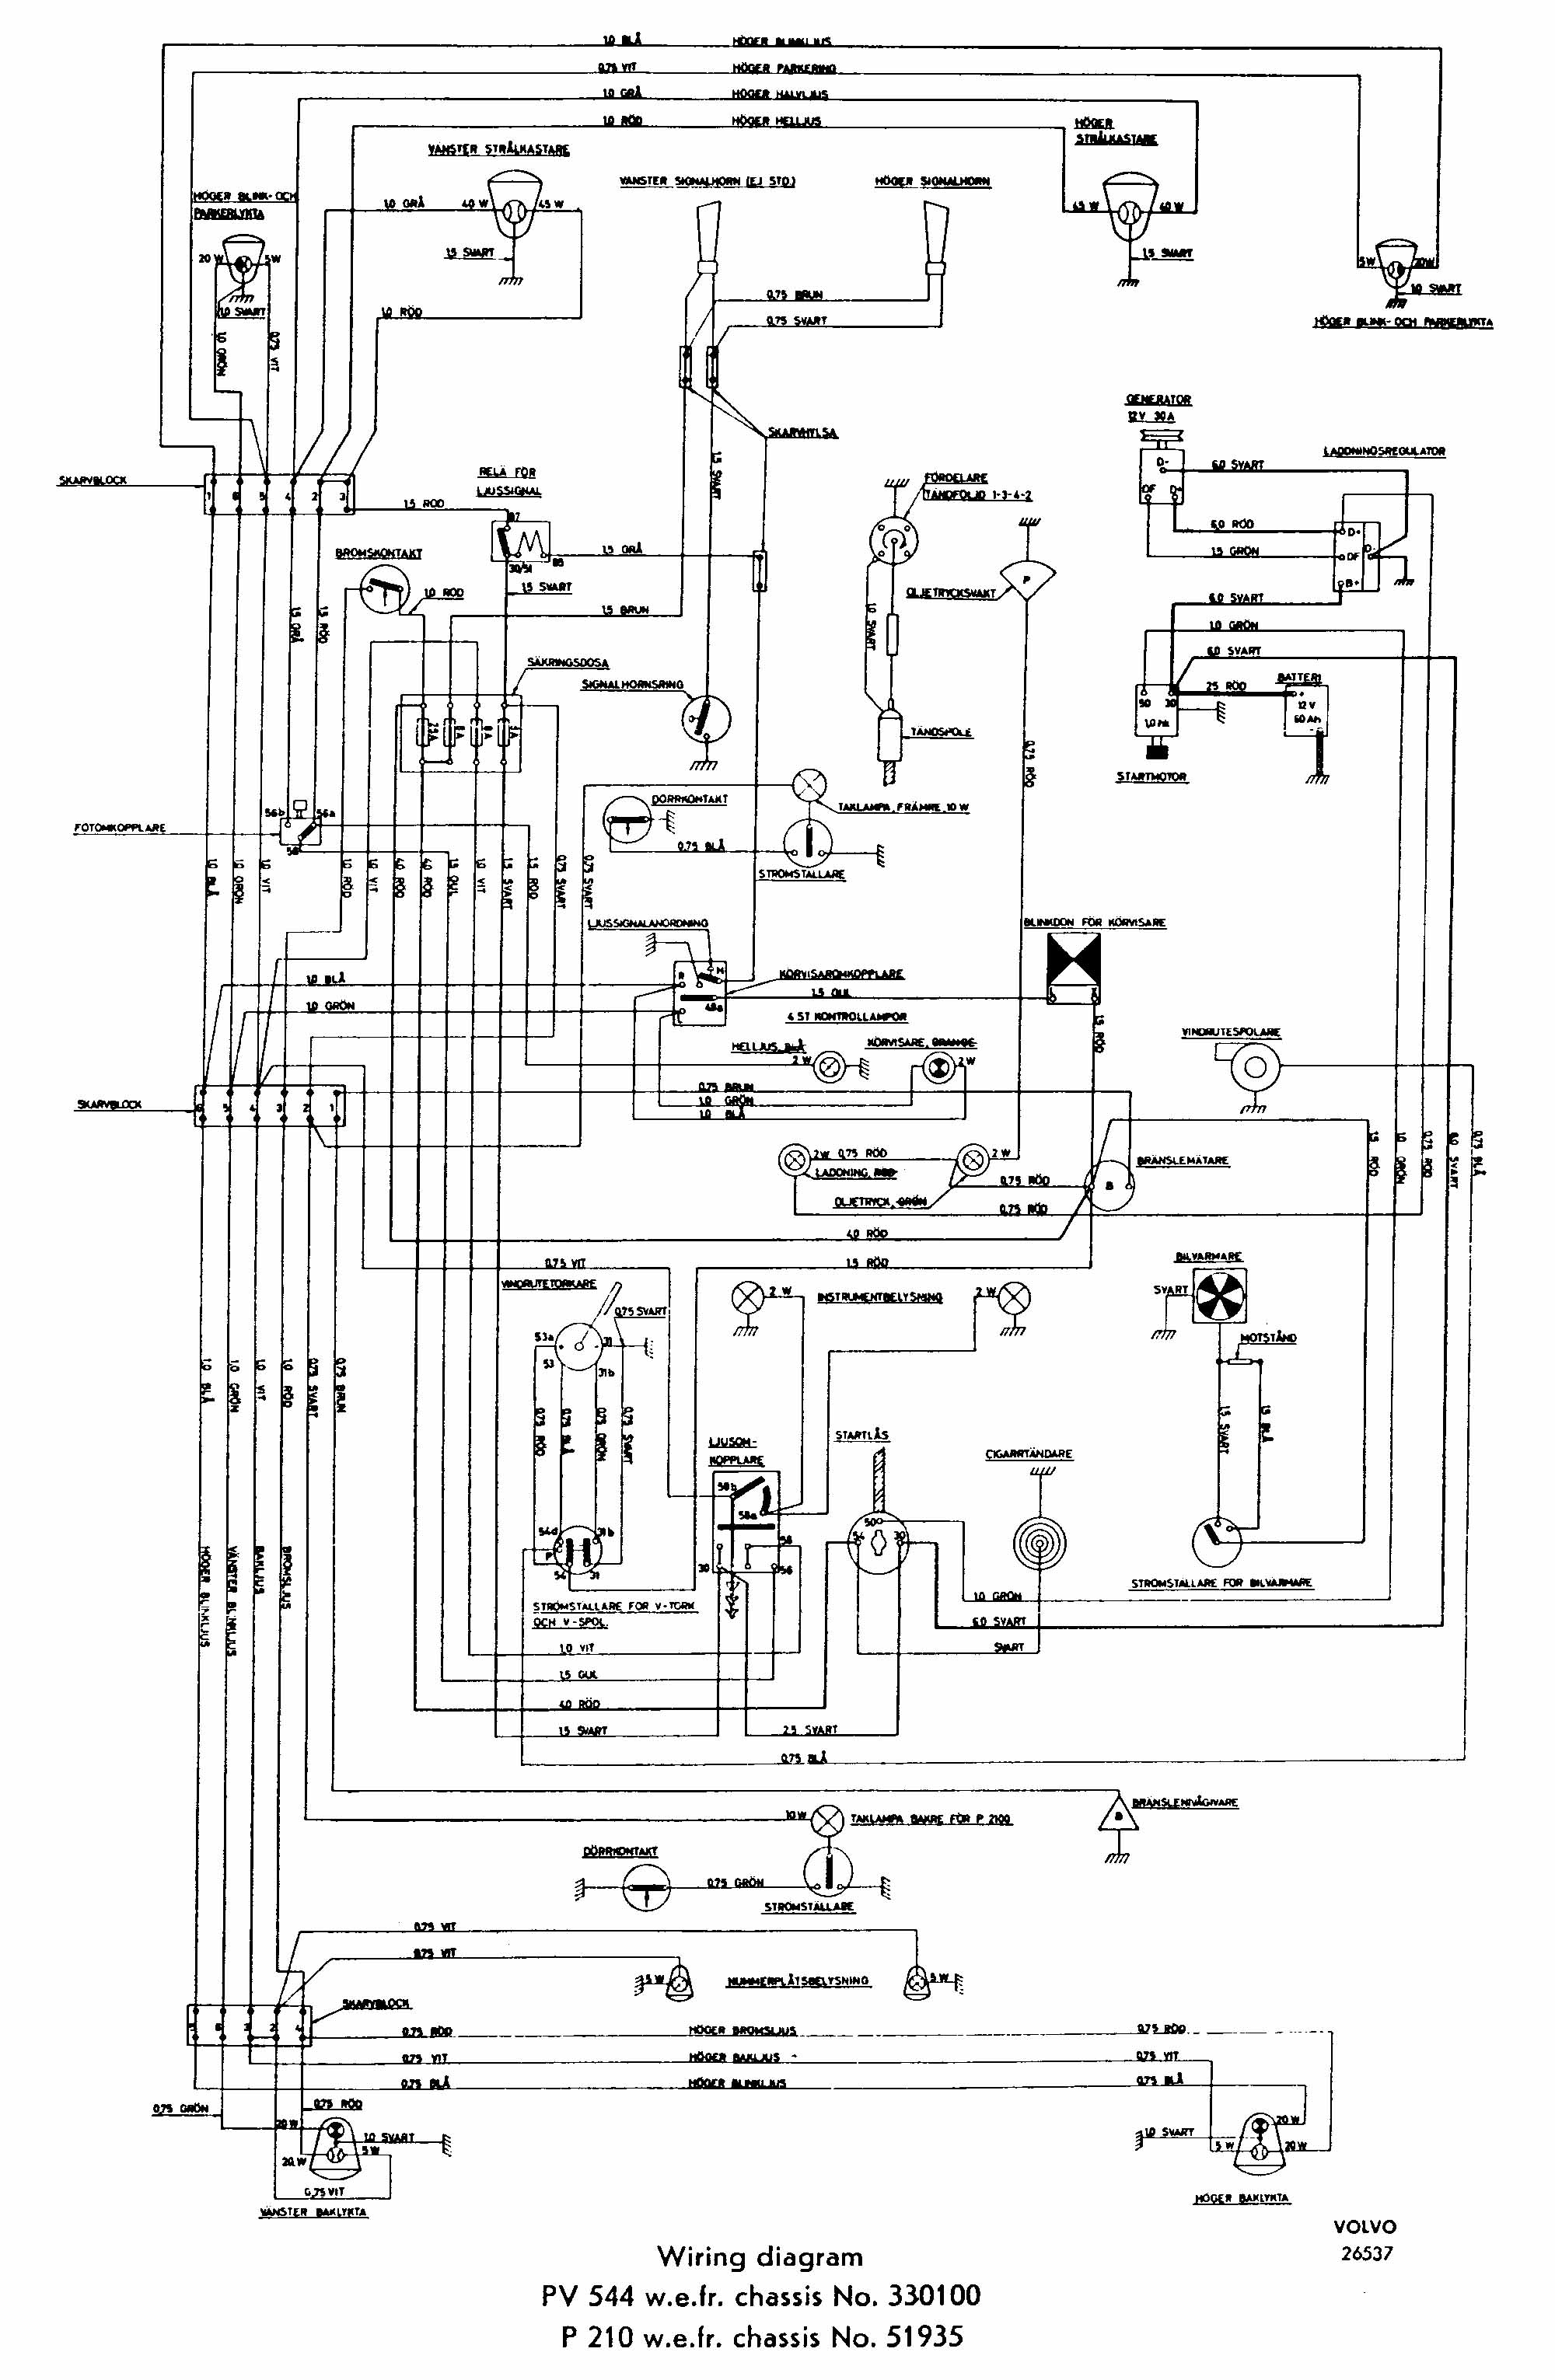 Sw Em Service Notes 65 Hp Mercury Outboard Motor Wiring Diagram 544 210